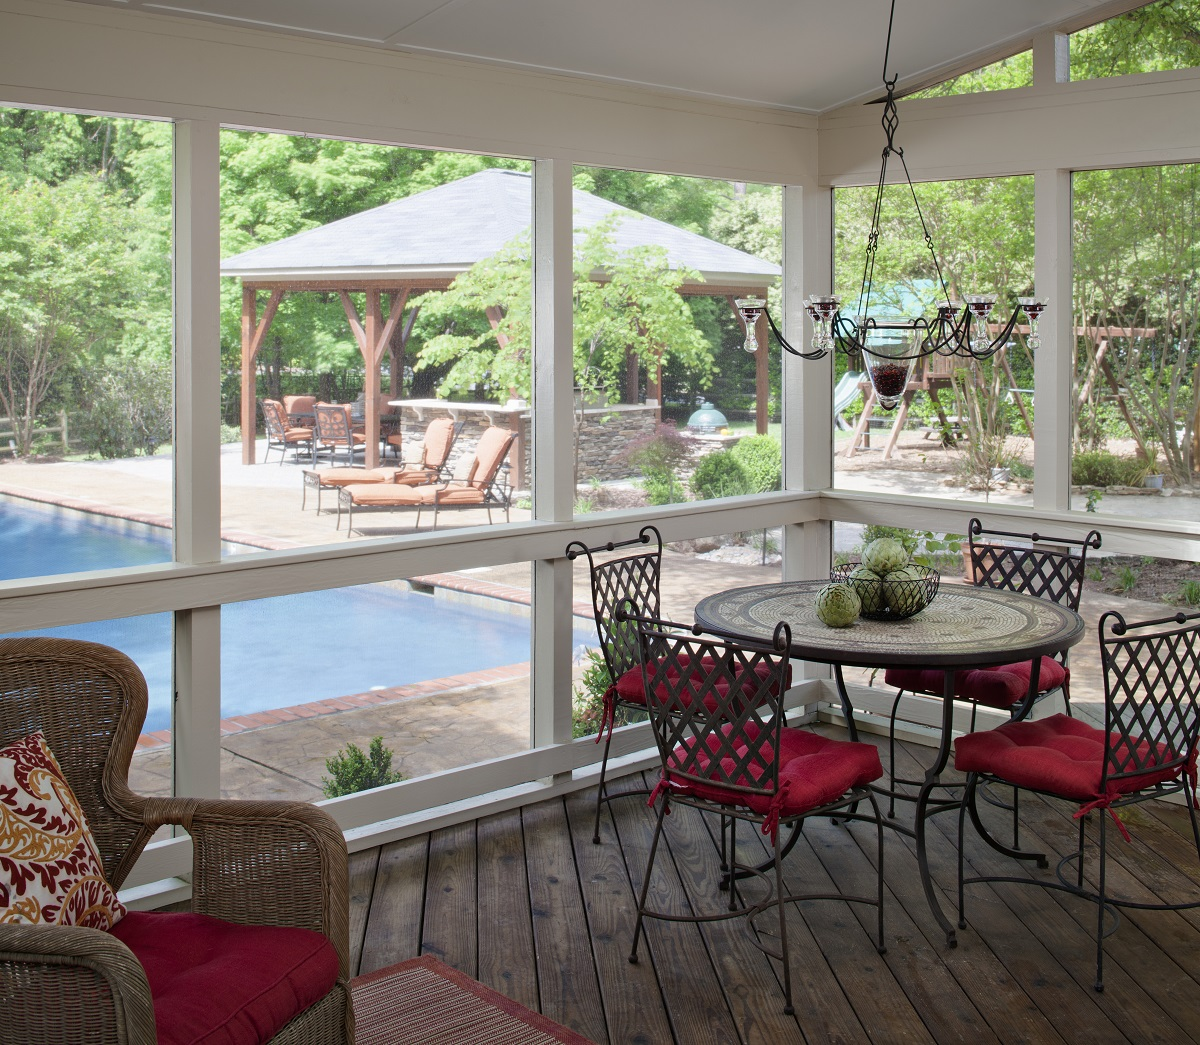 These-homeowners-began-with-a-screened-porch-and-built-out-into-the-pool-area